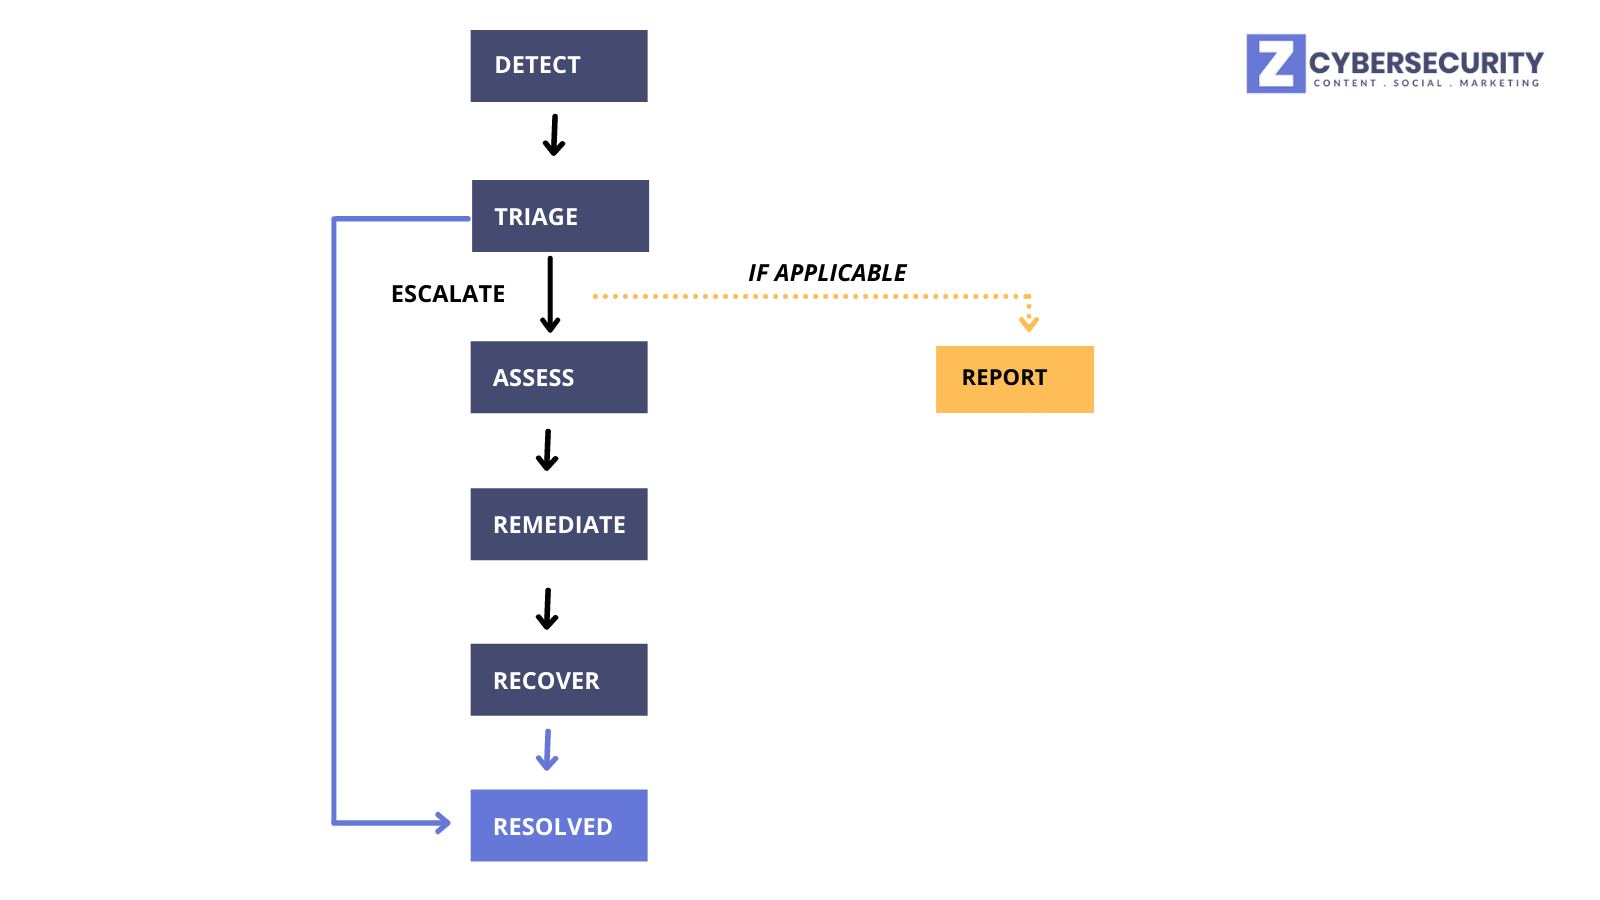 A typical high-level incident response process